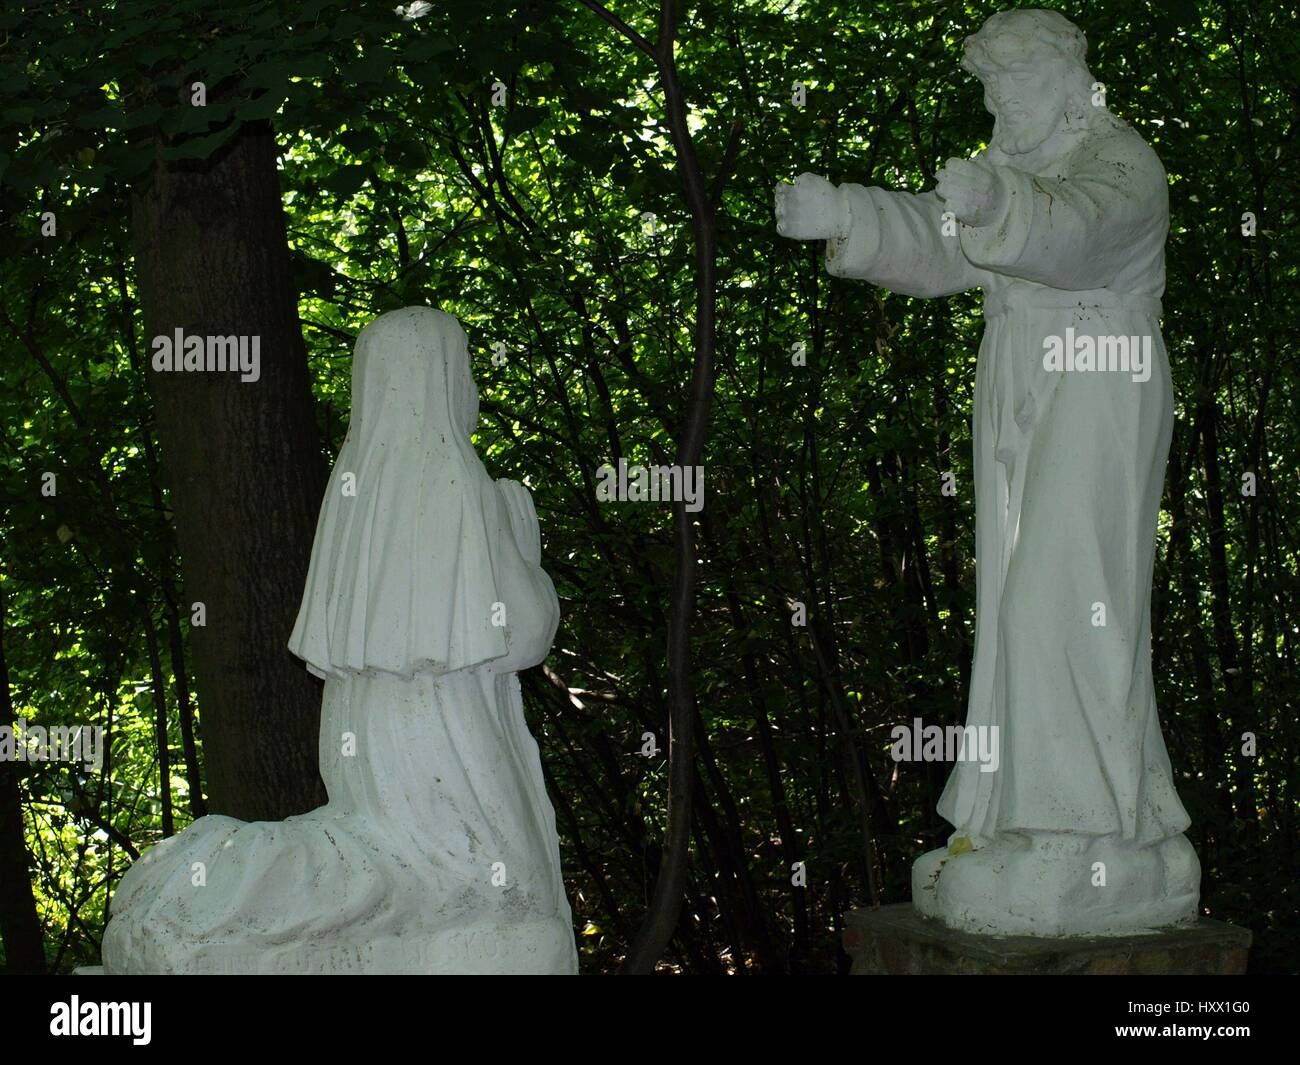 Stoned statues of saints in the shrine of the Holy Otylia in Urzedow, Poland - Stock Image